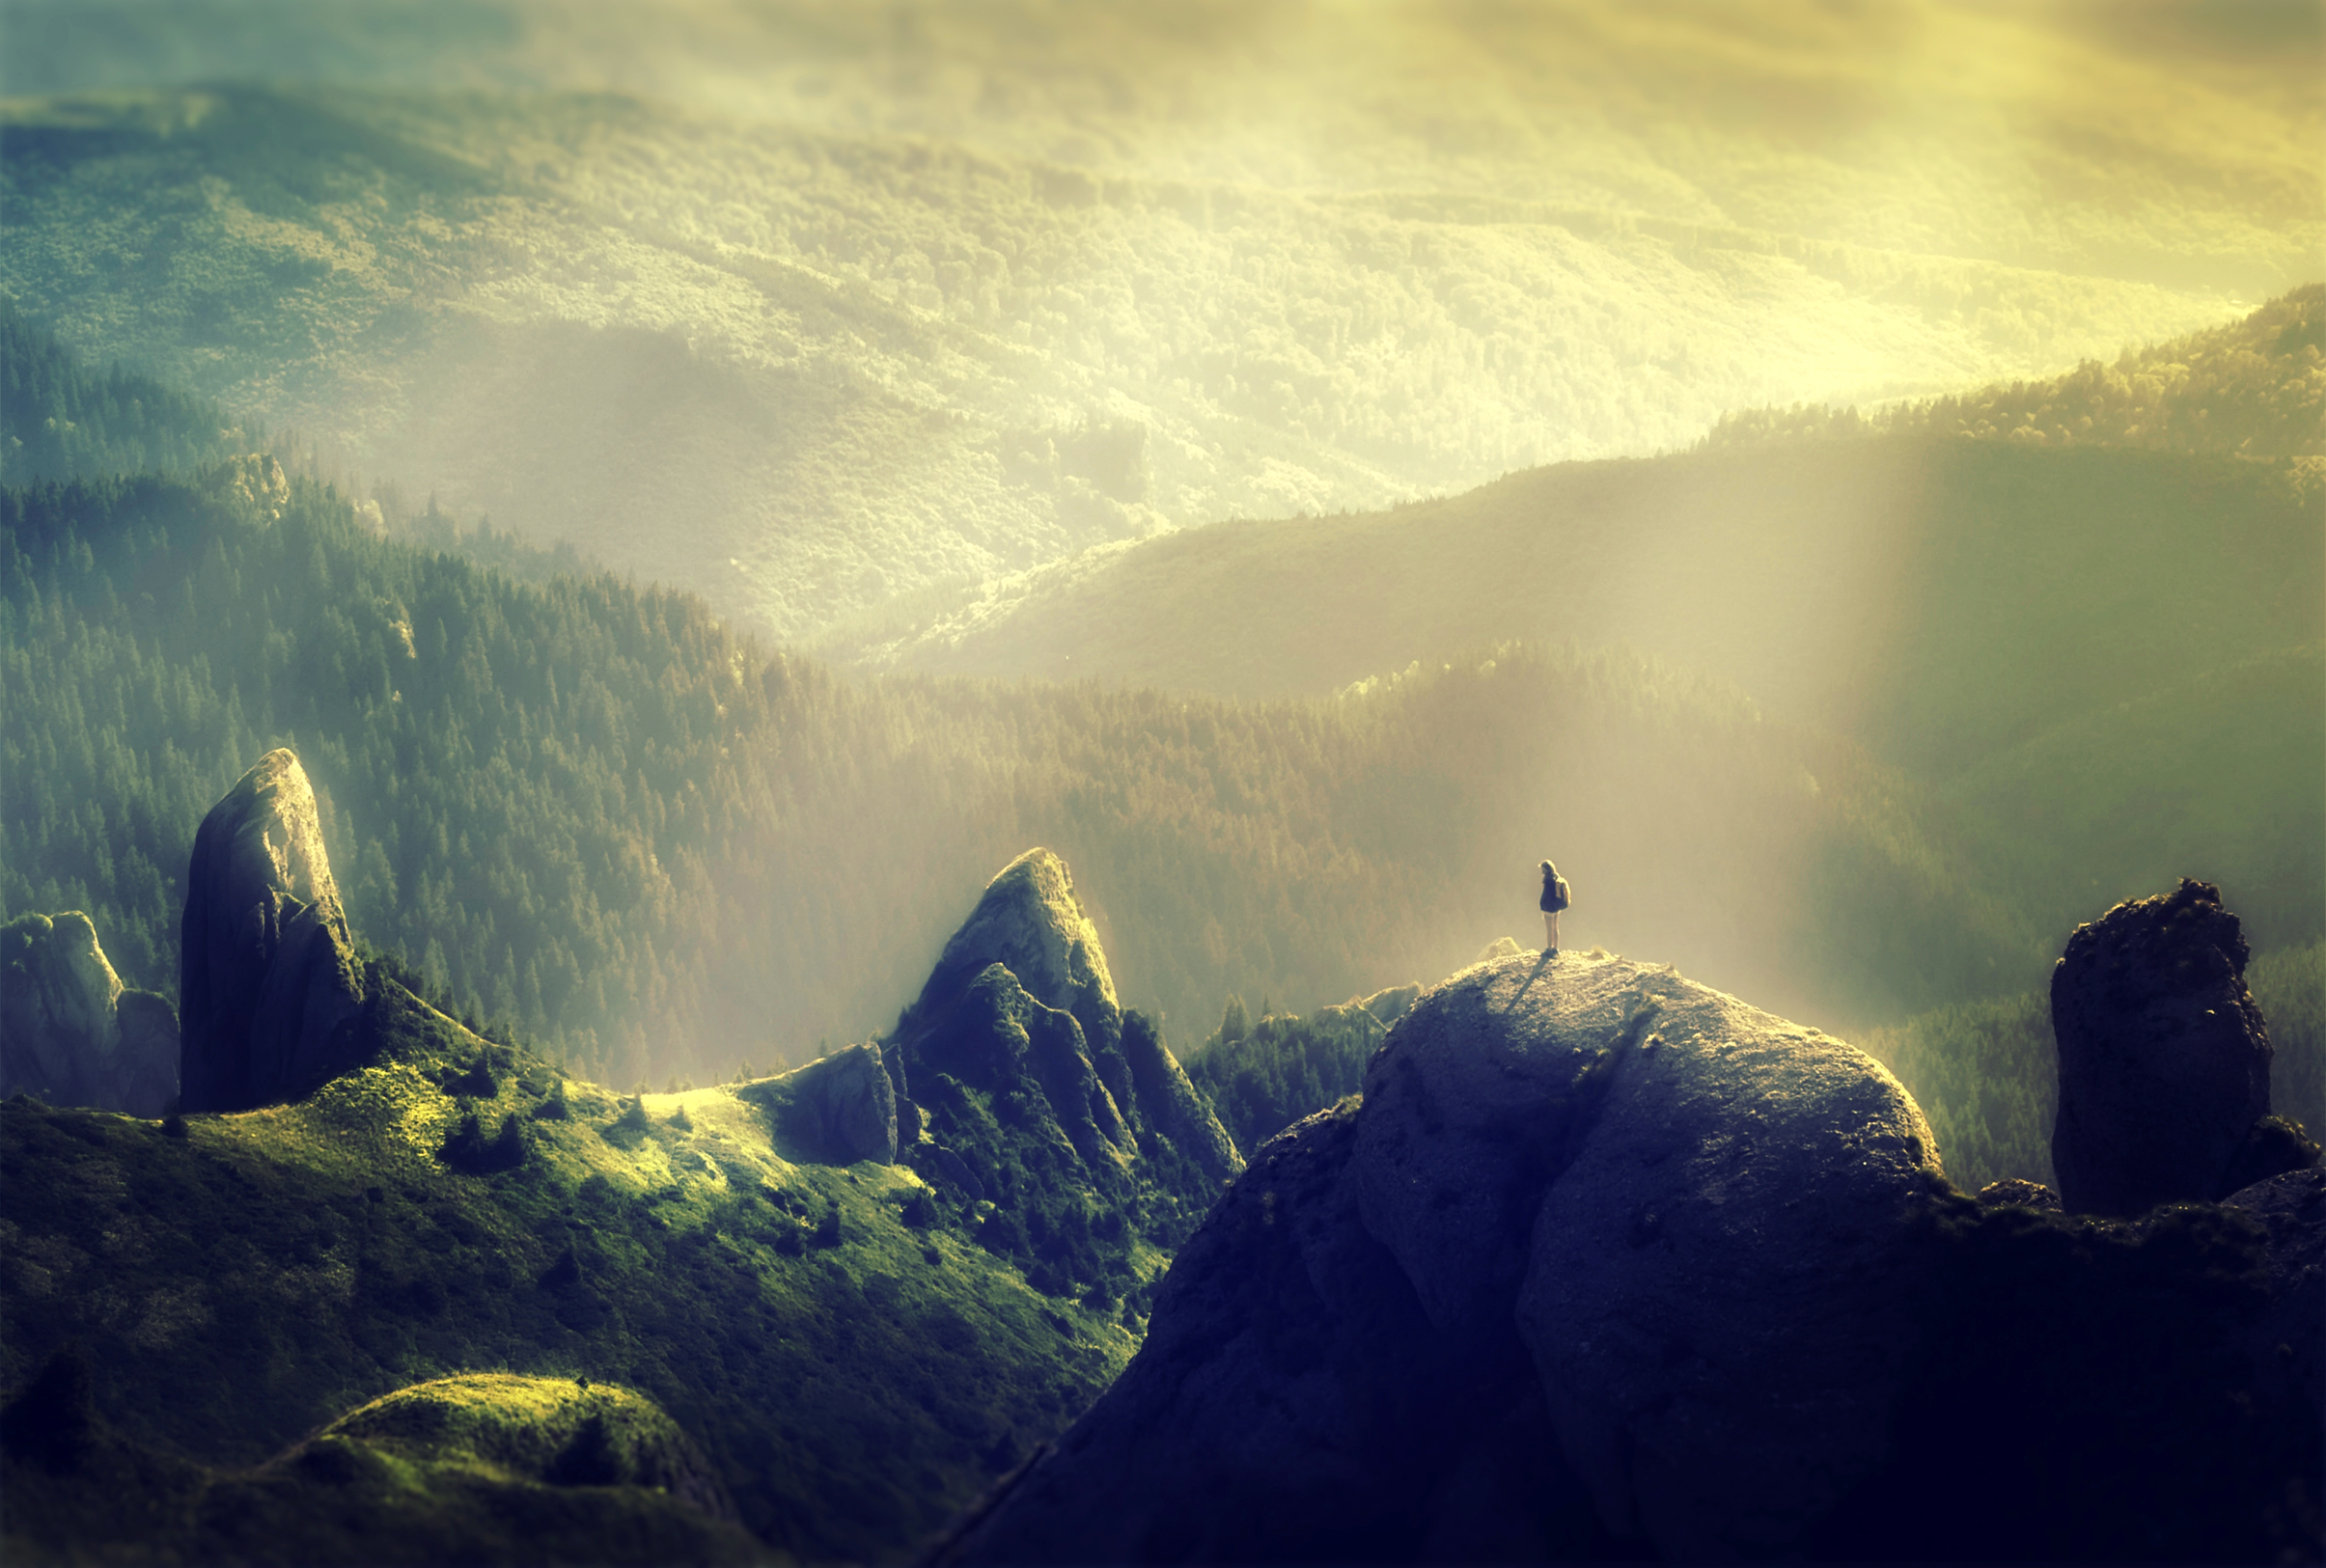 Woman Alone at the Top of the Mountain, Achievement, Rucksack, Sport, Solitude, HQ Photo